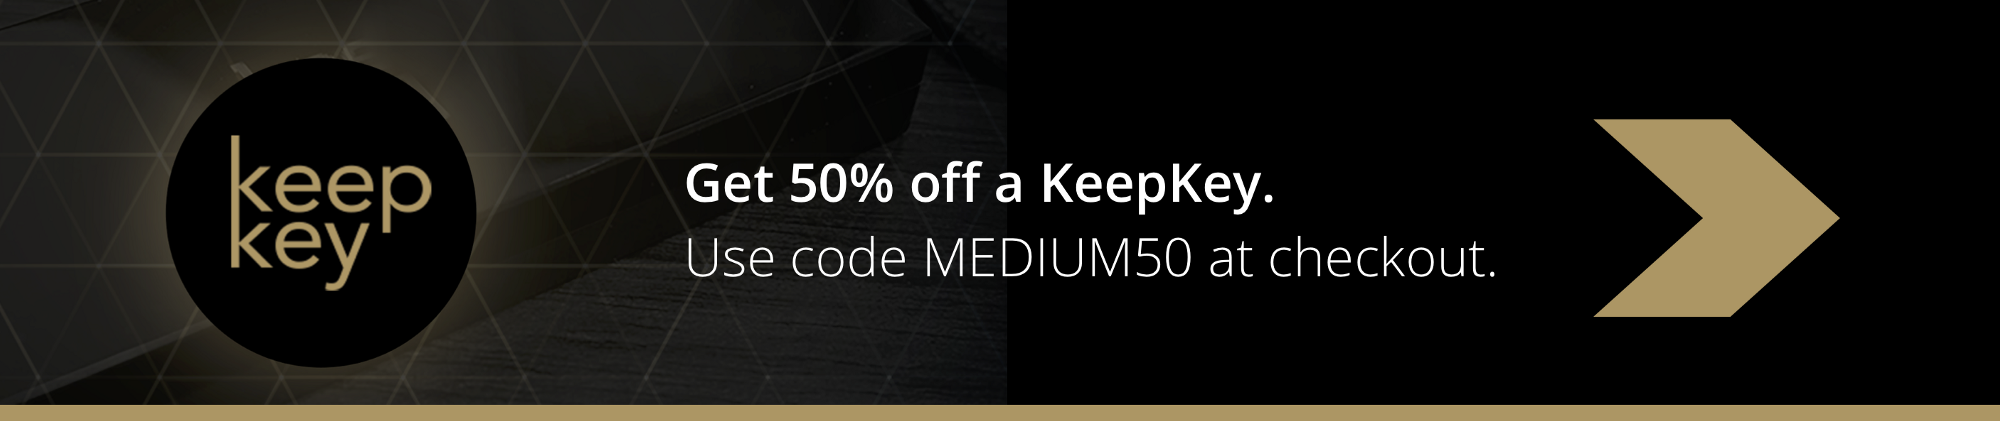 Get 50% off a KeepKey Crypto Hardware Wallet with the Code MEDIUM50